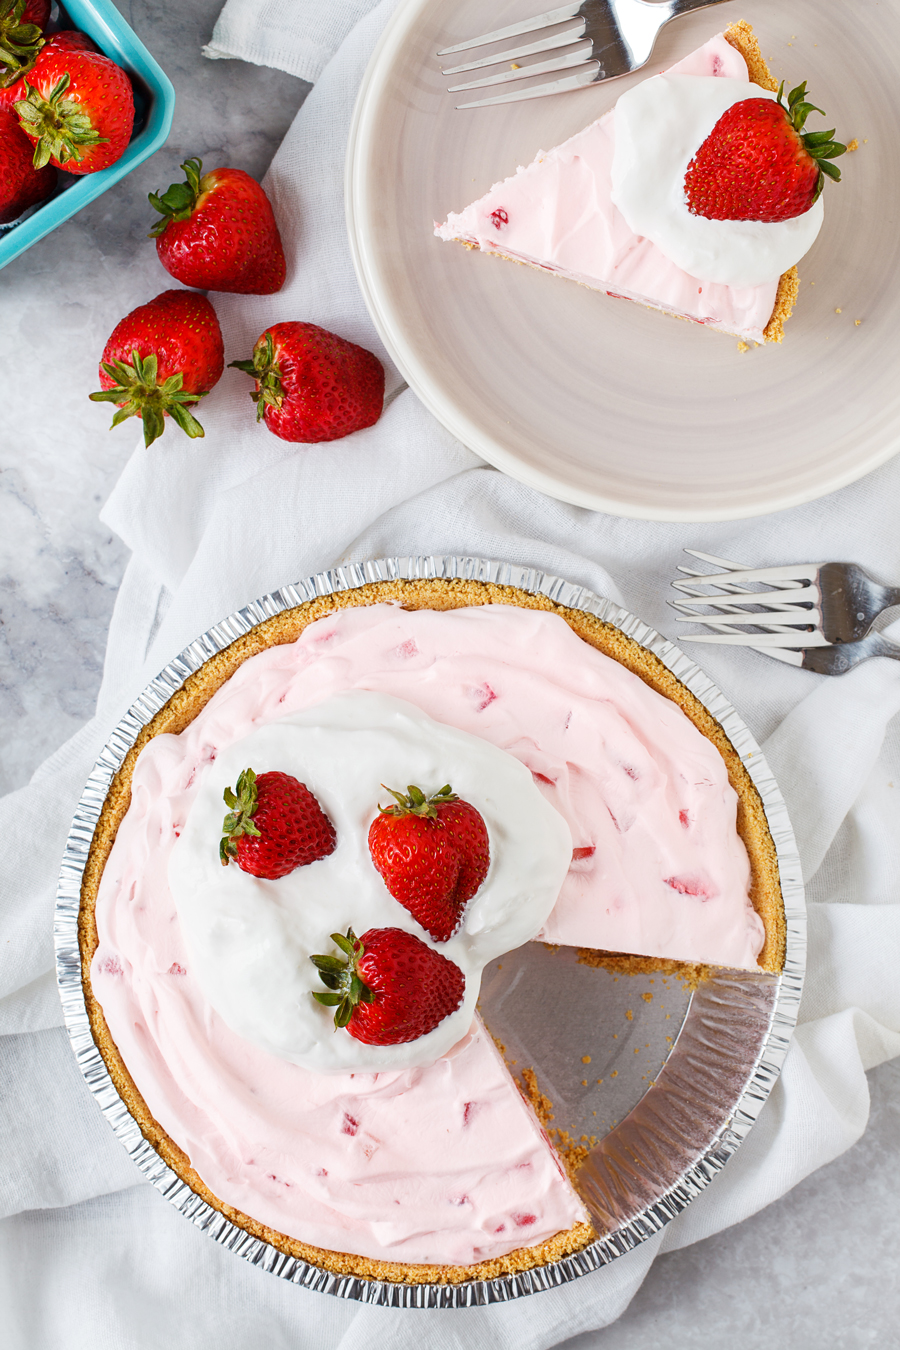 Frozen Strawberry Pie Ingredients